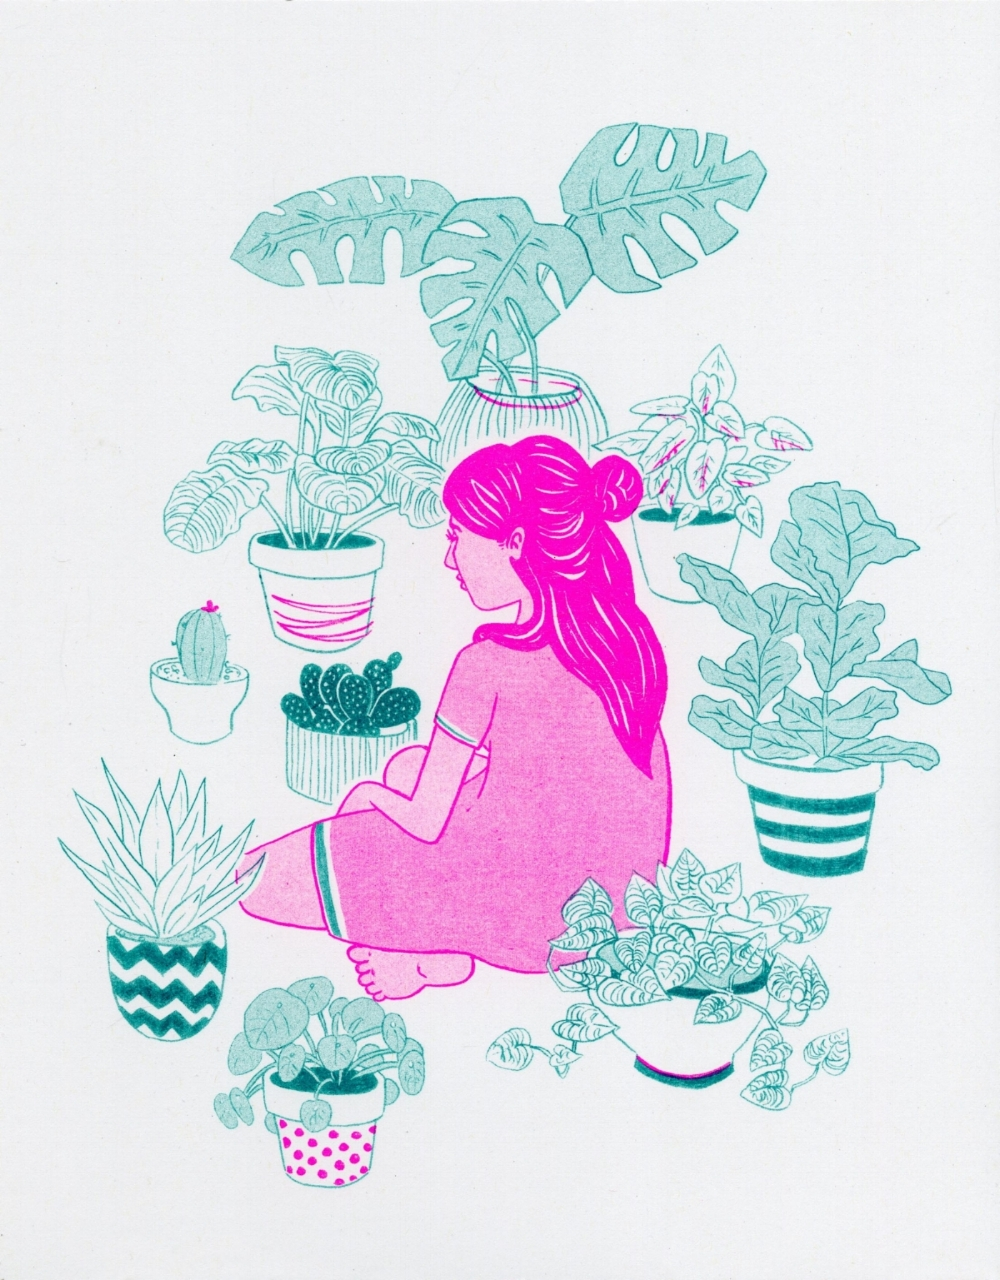 Plant Risograph - 2016  Drawn traditionally and printed with a risograph printer